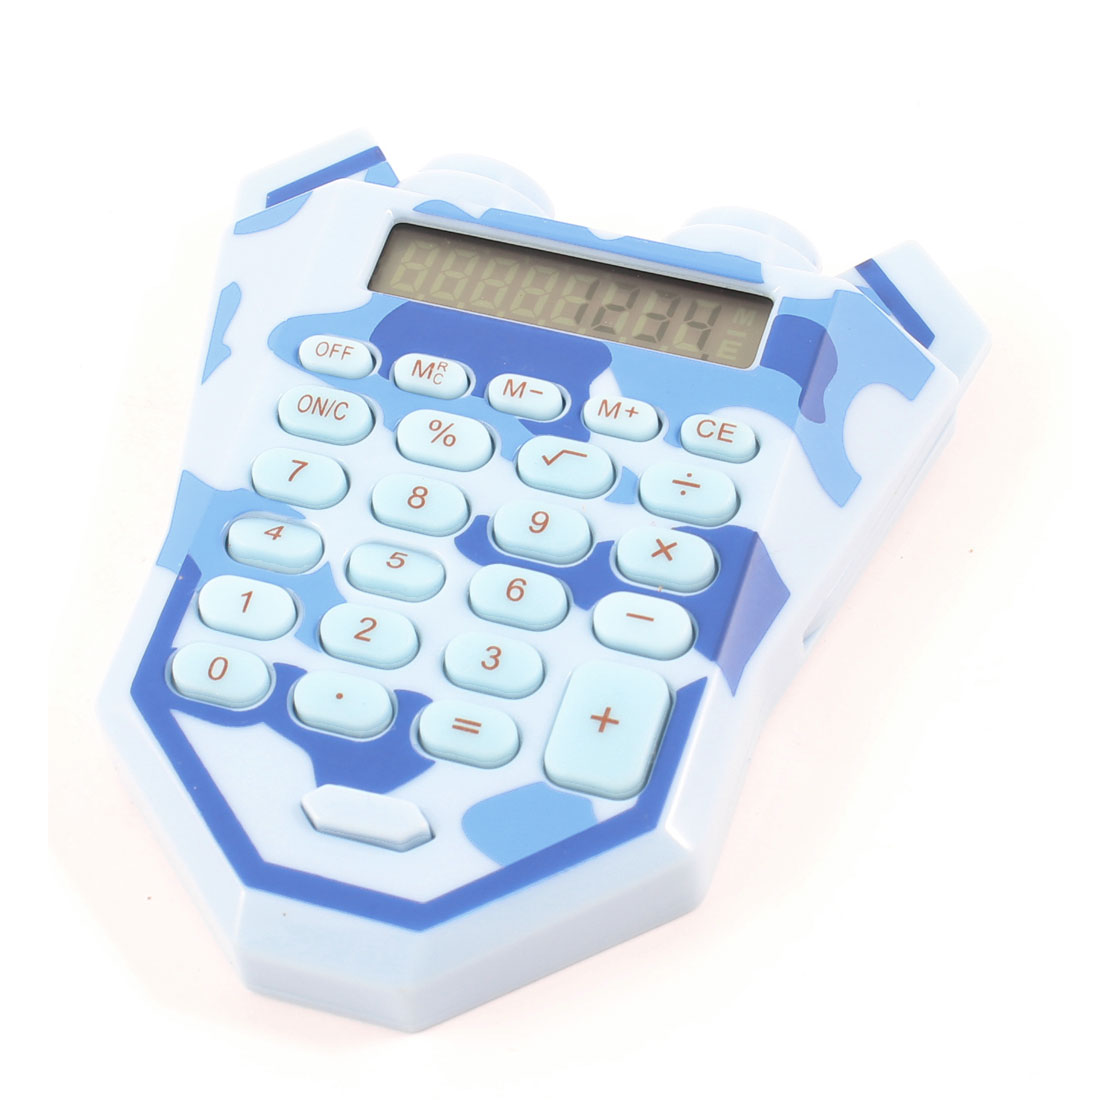 Blue Soft Silicone 24 Keypads Electronic Calculator